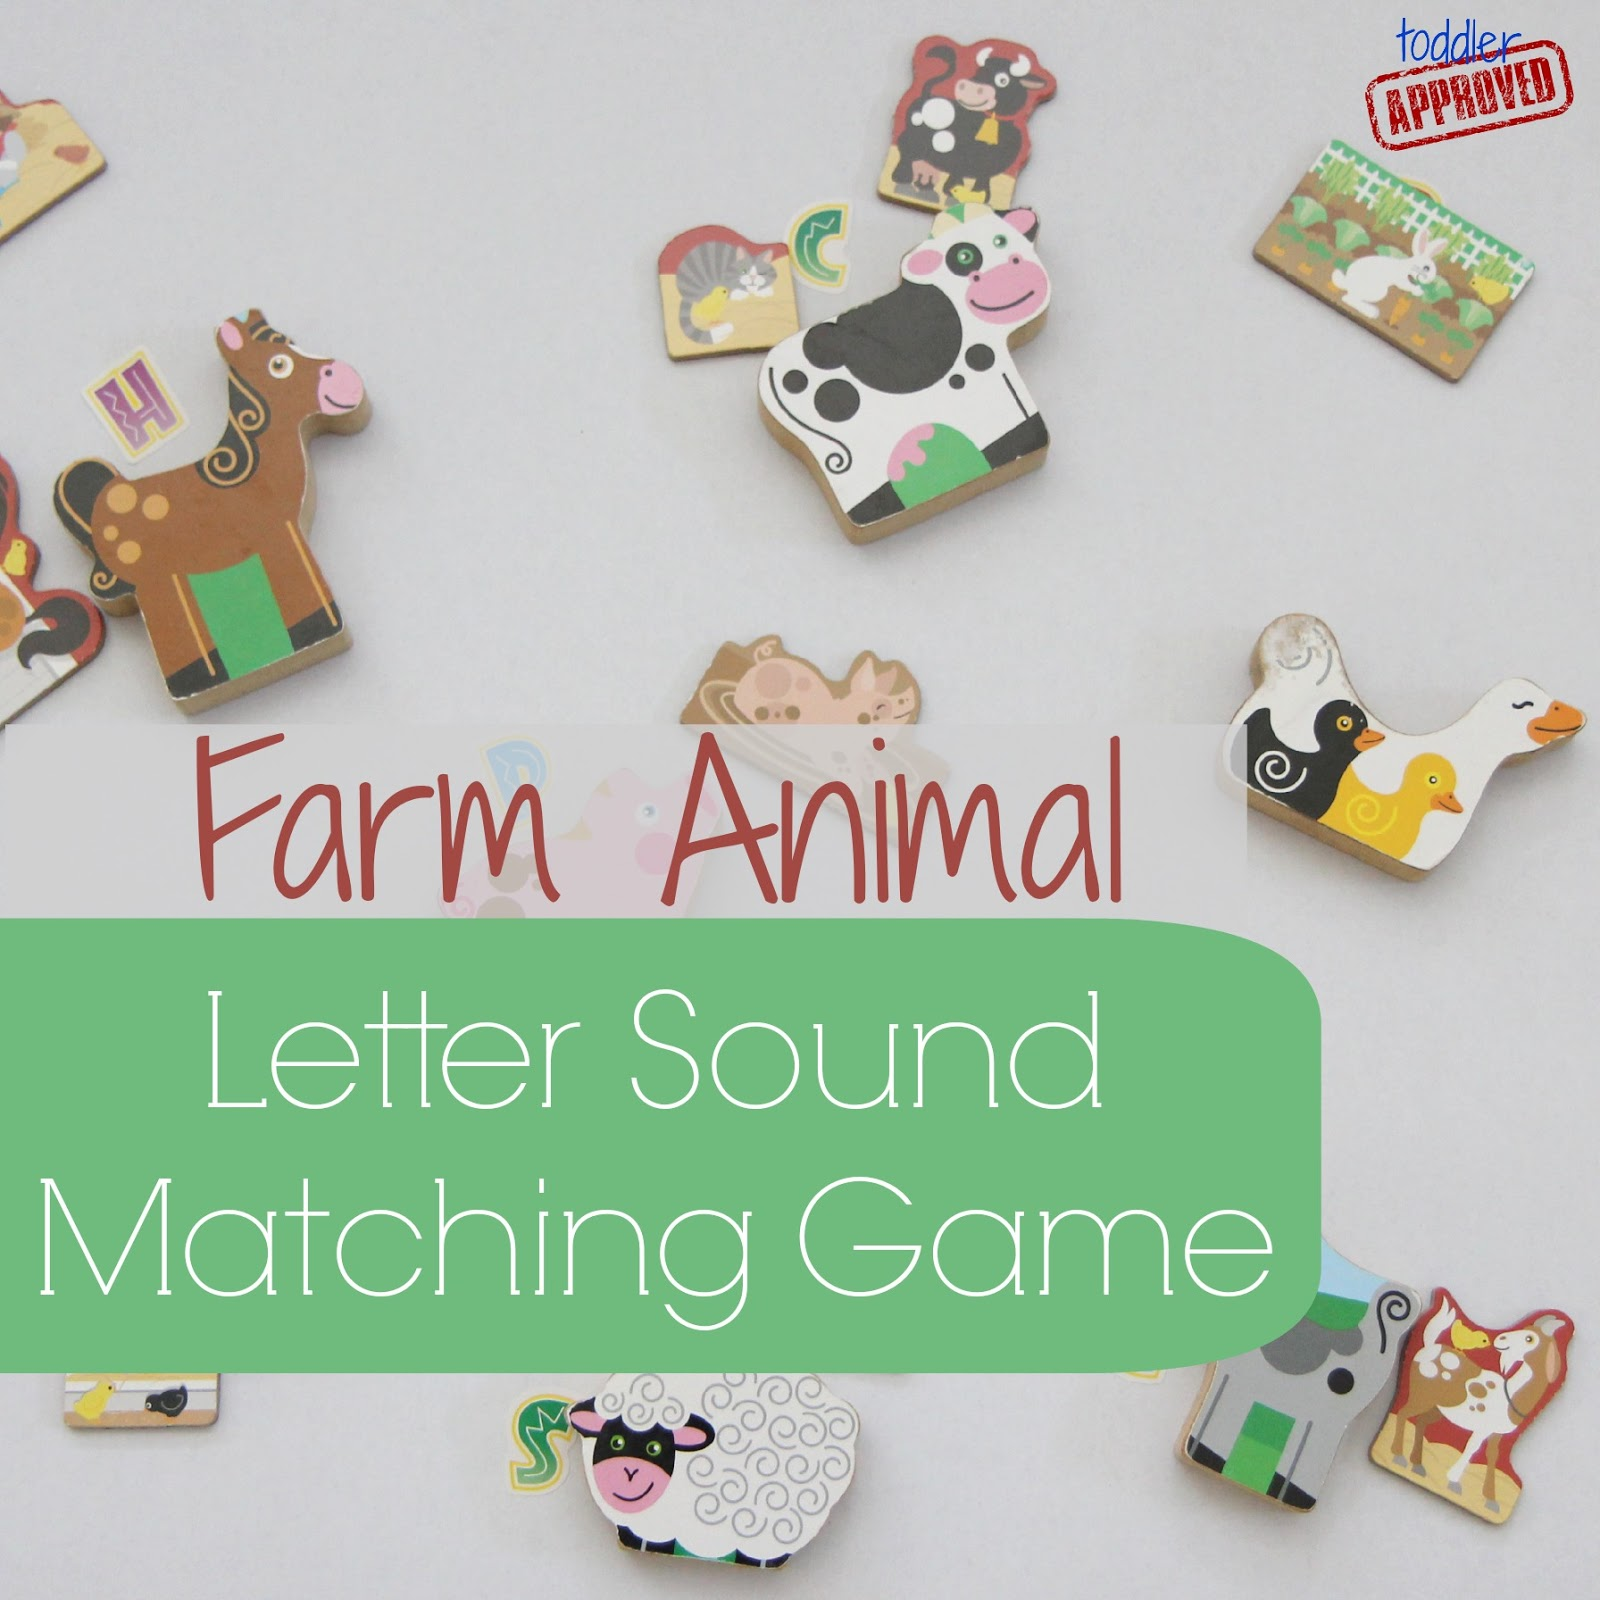 Toddler Approved Farm Animal Letter Sound Matching Game